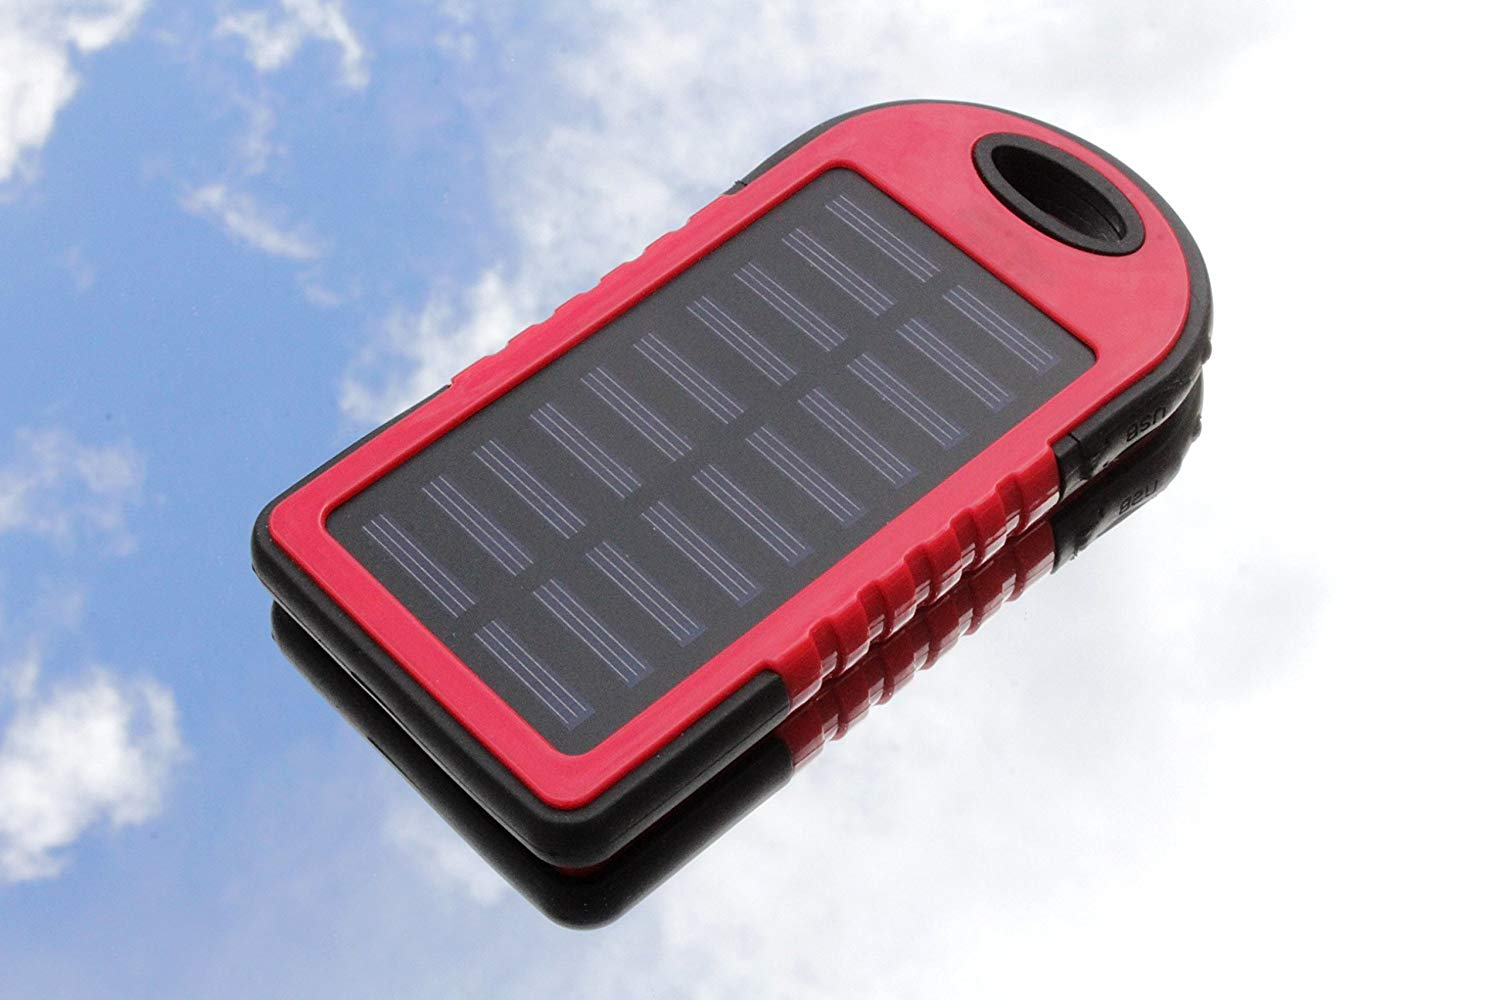 Solar Charger Water-Resistant 30000mAh Power Bank + LED Flashlight EZSTATION Solar Panels Portable Re-Chargable Battery 2X USB For iPhone X 8 7 6 plus iPad Galaxy Outdoor Camping Travelling (RED)